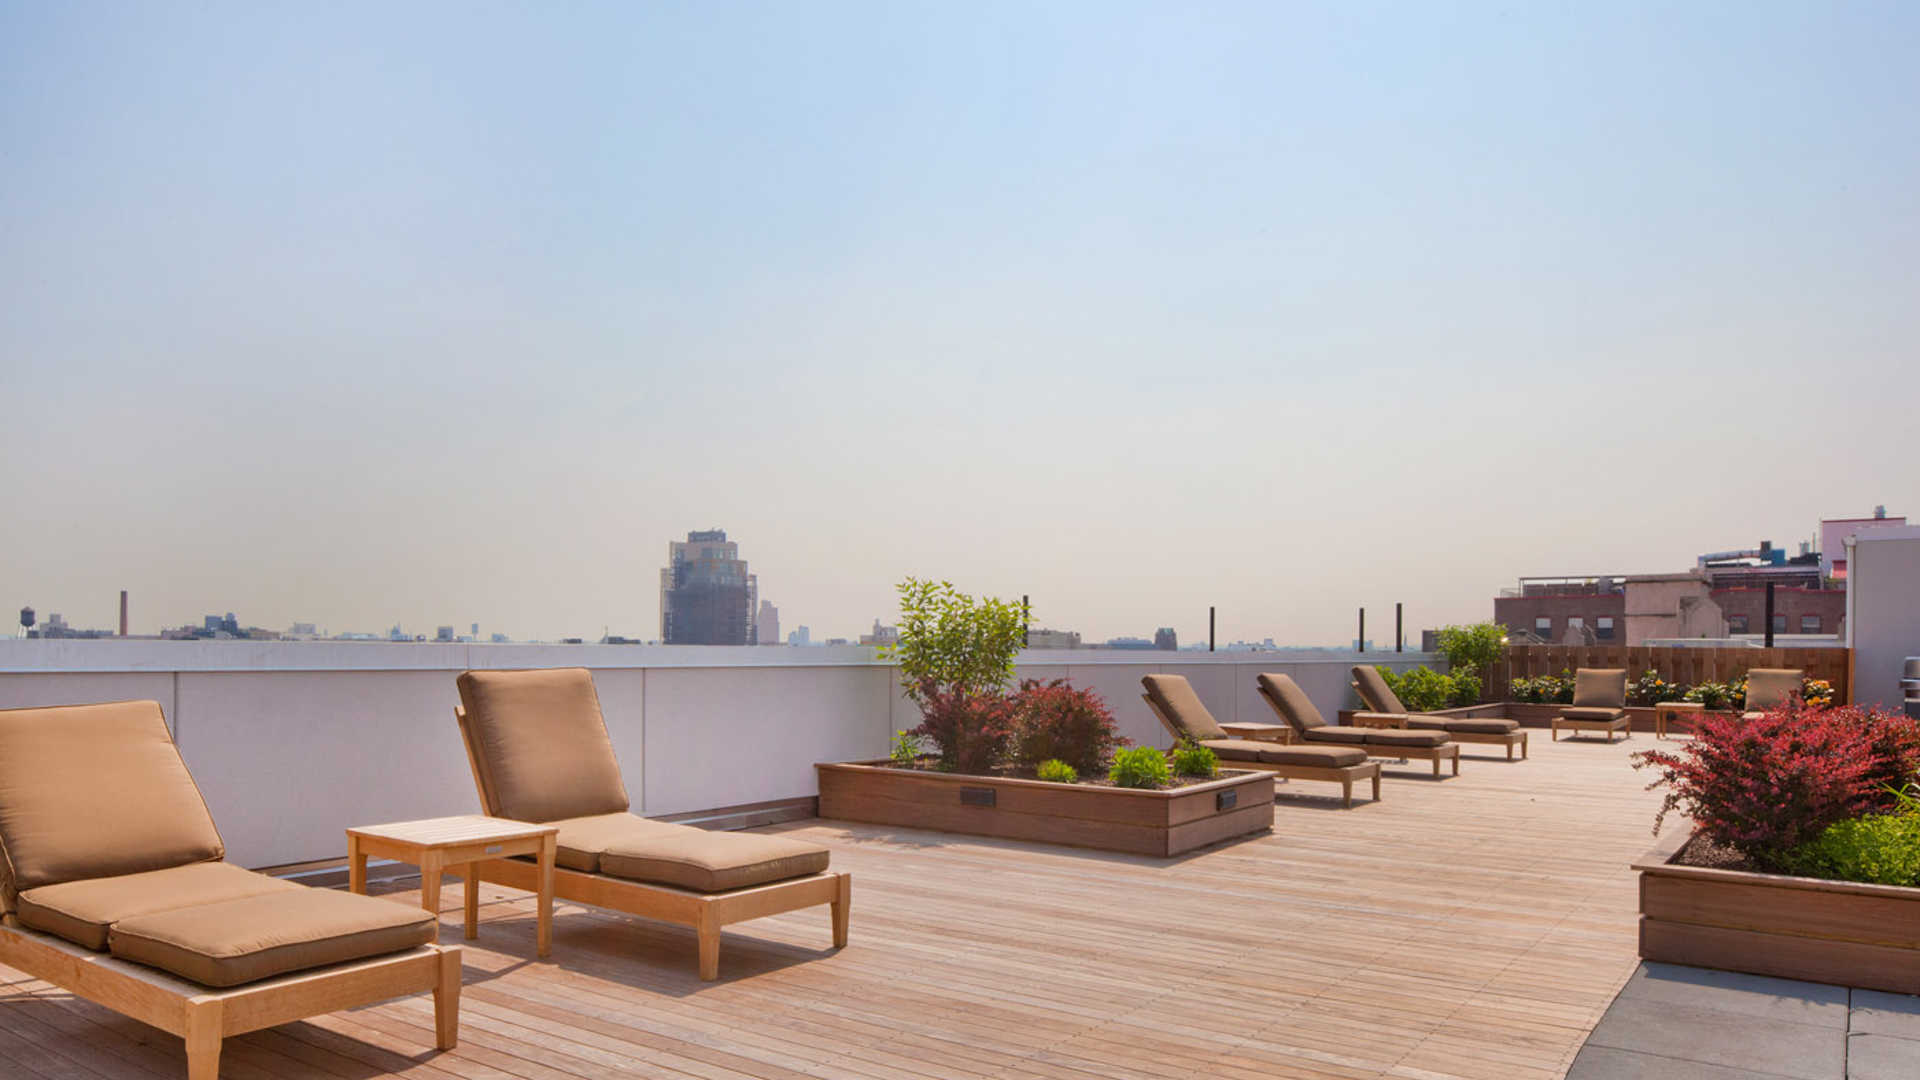 Roof Deck with City View